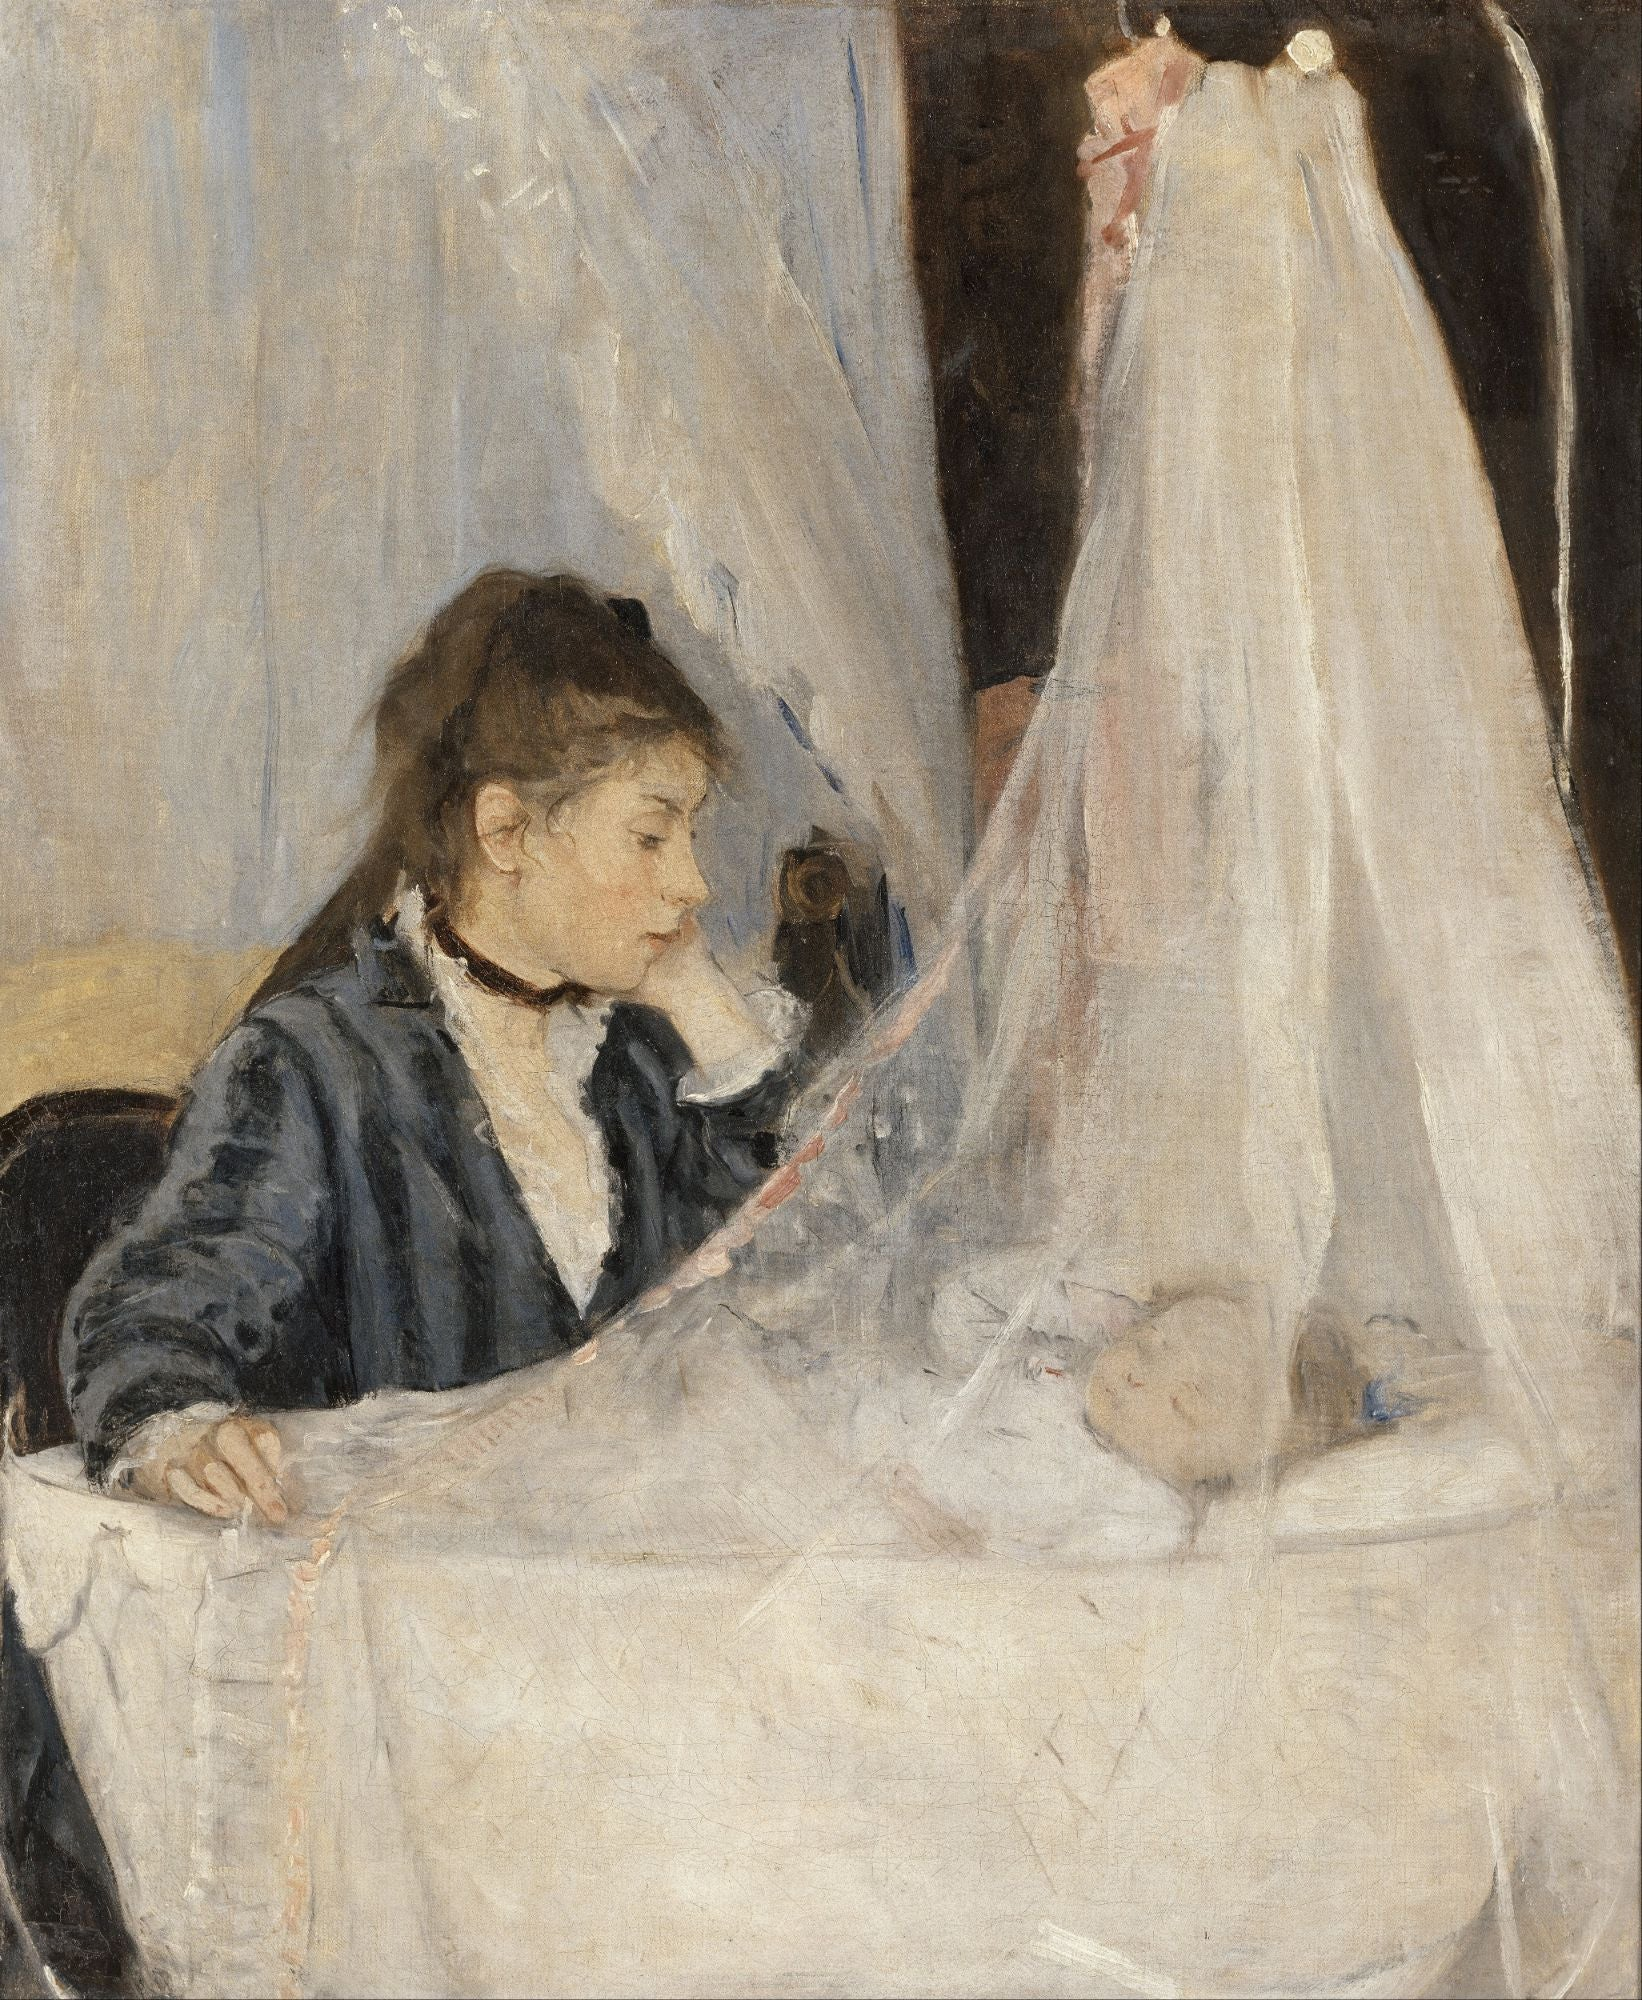 Berthe Morisot Paintings | Buy Posters, Frames, Canvas, Digital Art & Large Size Prints